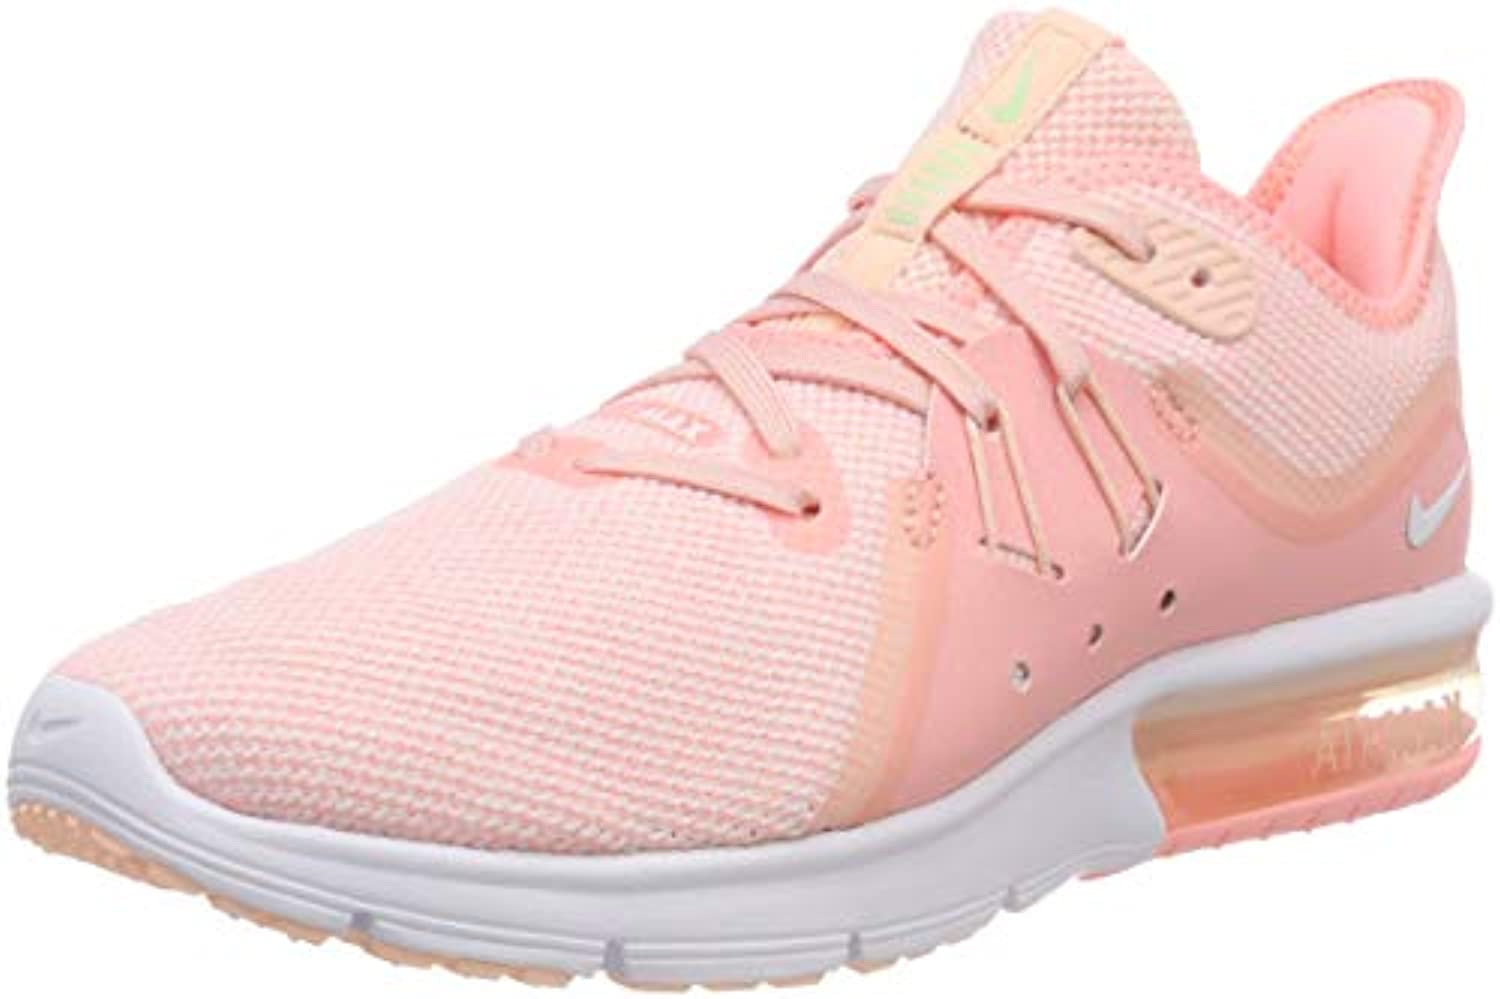 Nike Air Max Sequent Sequent Sequent 3 0fa82347935